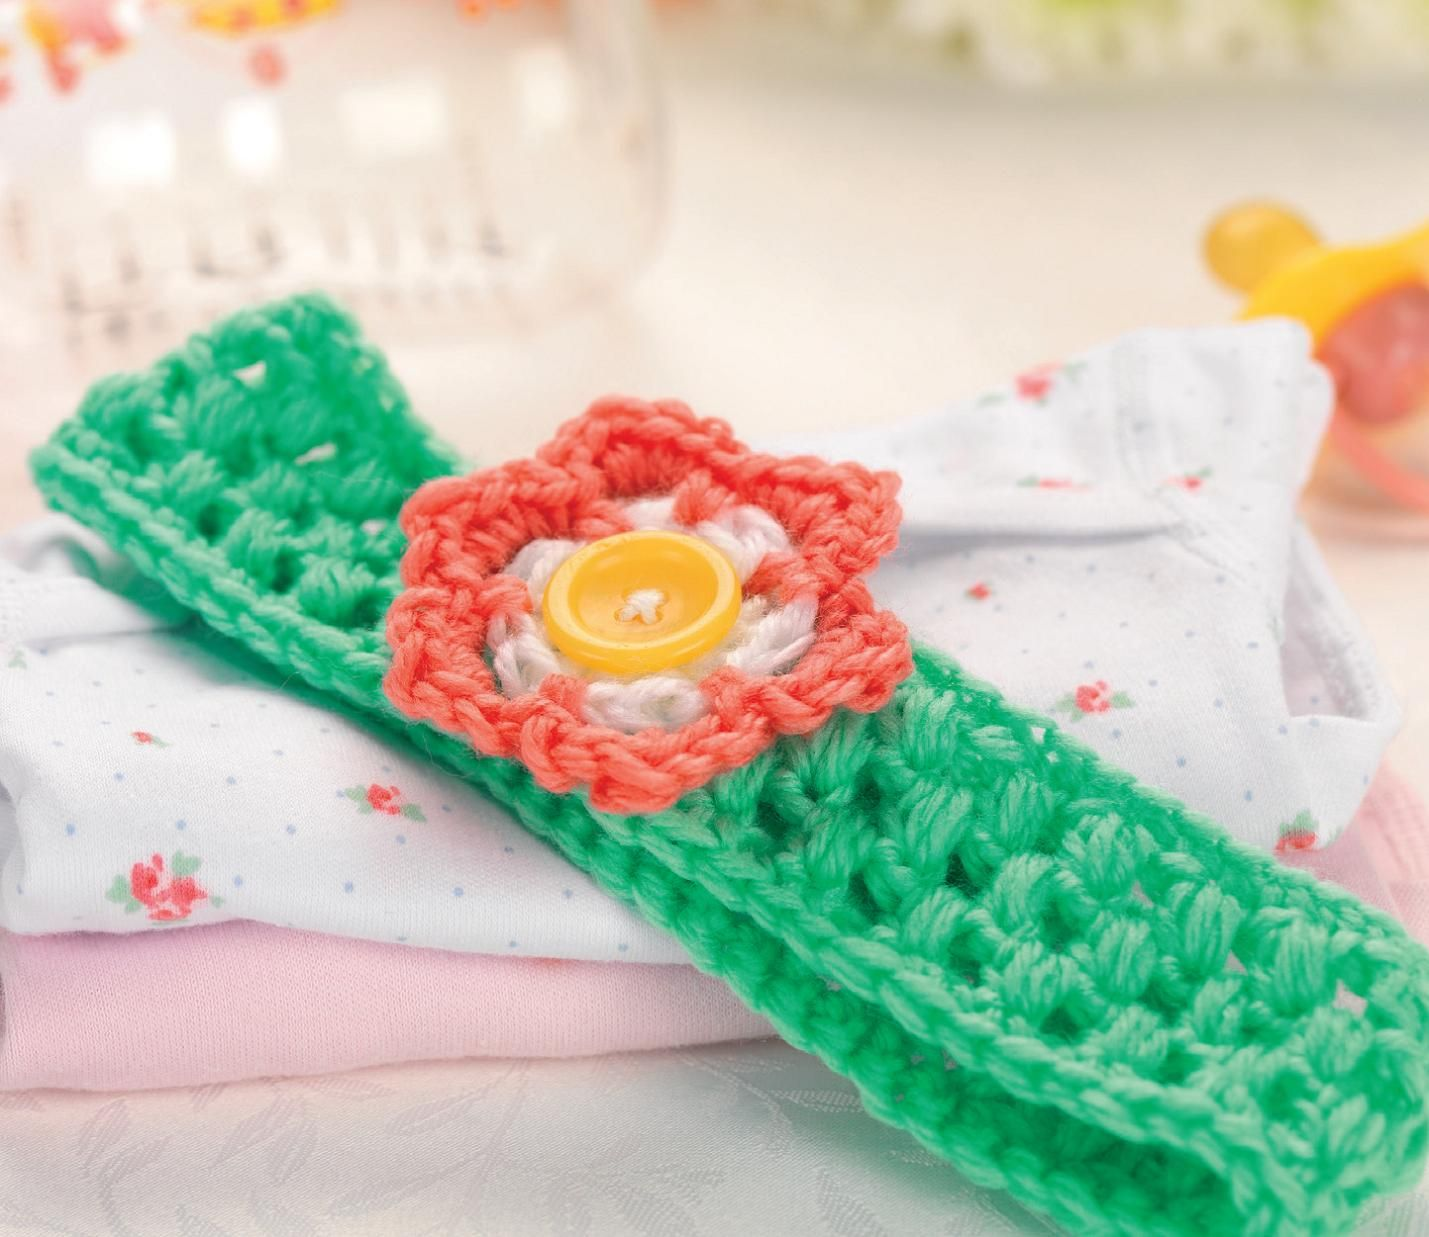 Crochet flower baby headband crochet pinterest crochet find out how to make a crochet flower baby headband with this free crochet pattern from top crochet patterns bankloansurffo Image collections